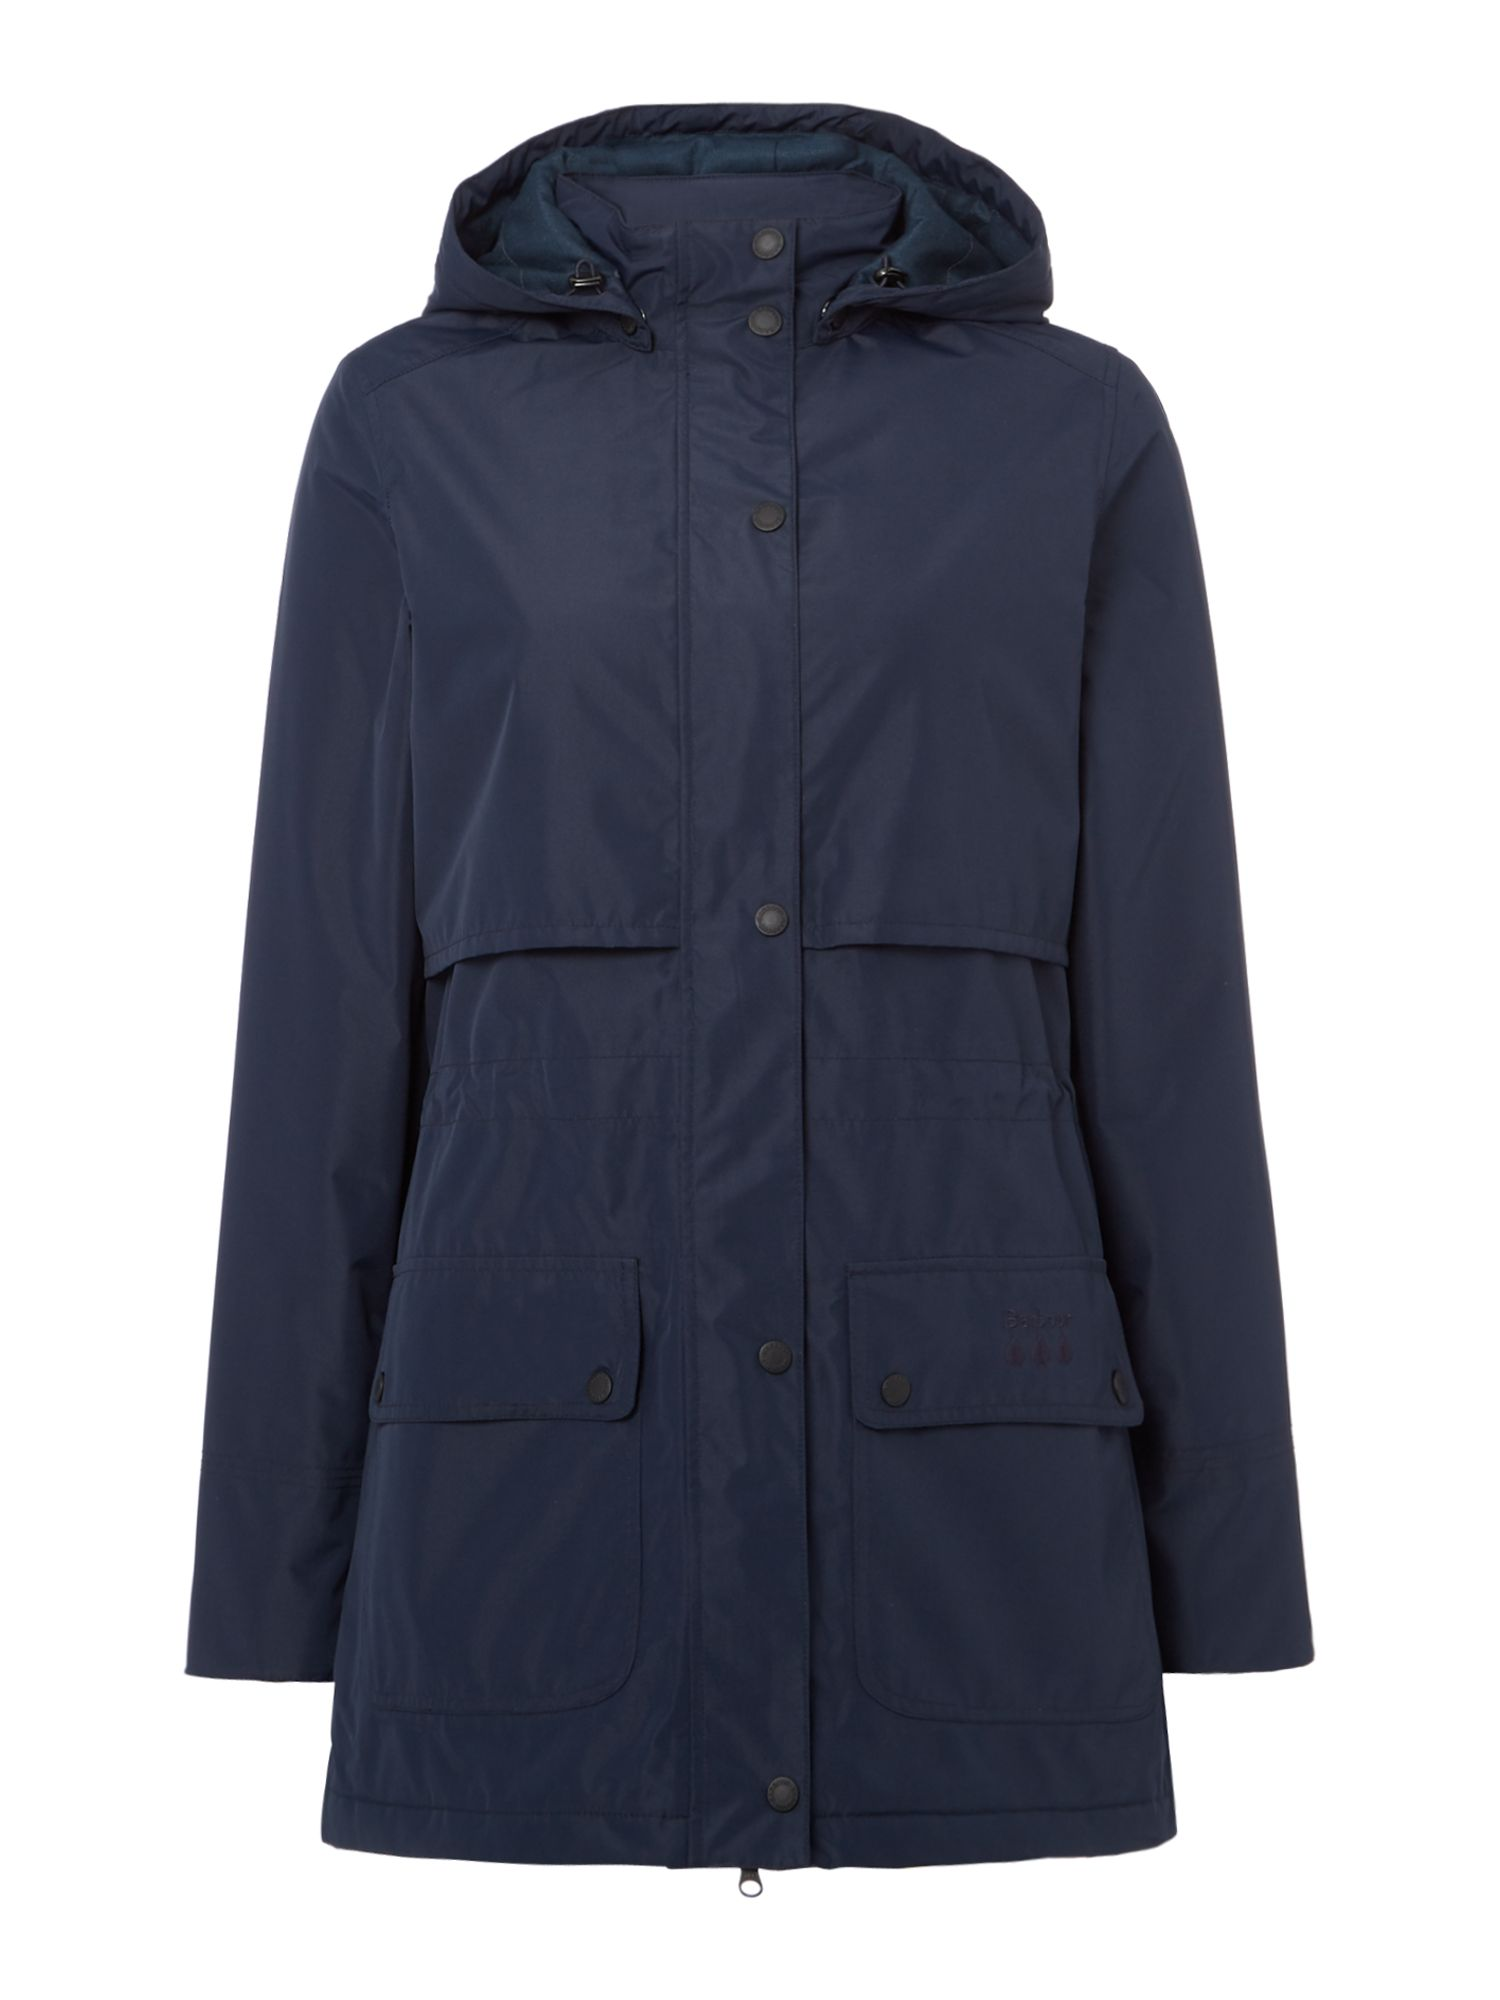 Barbour Stratus Jacket, Dark Blue